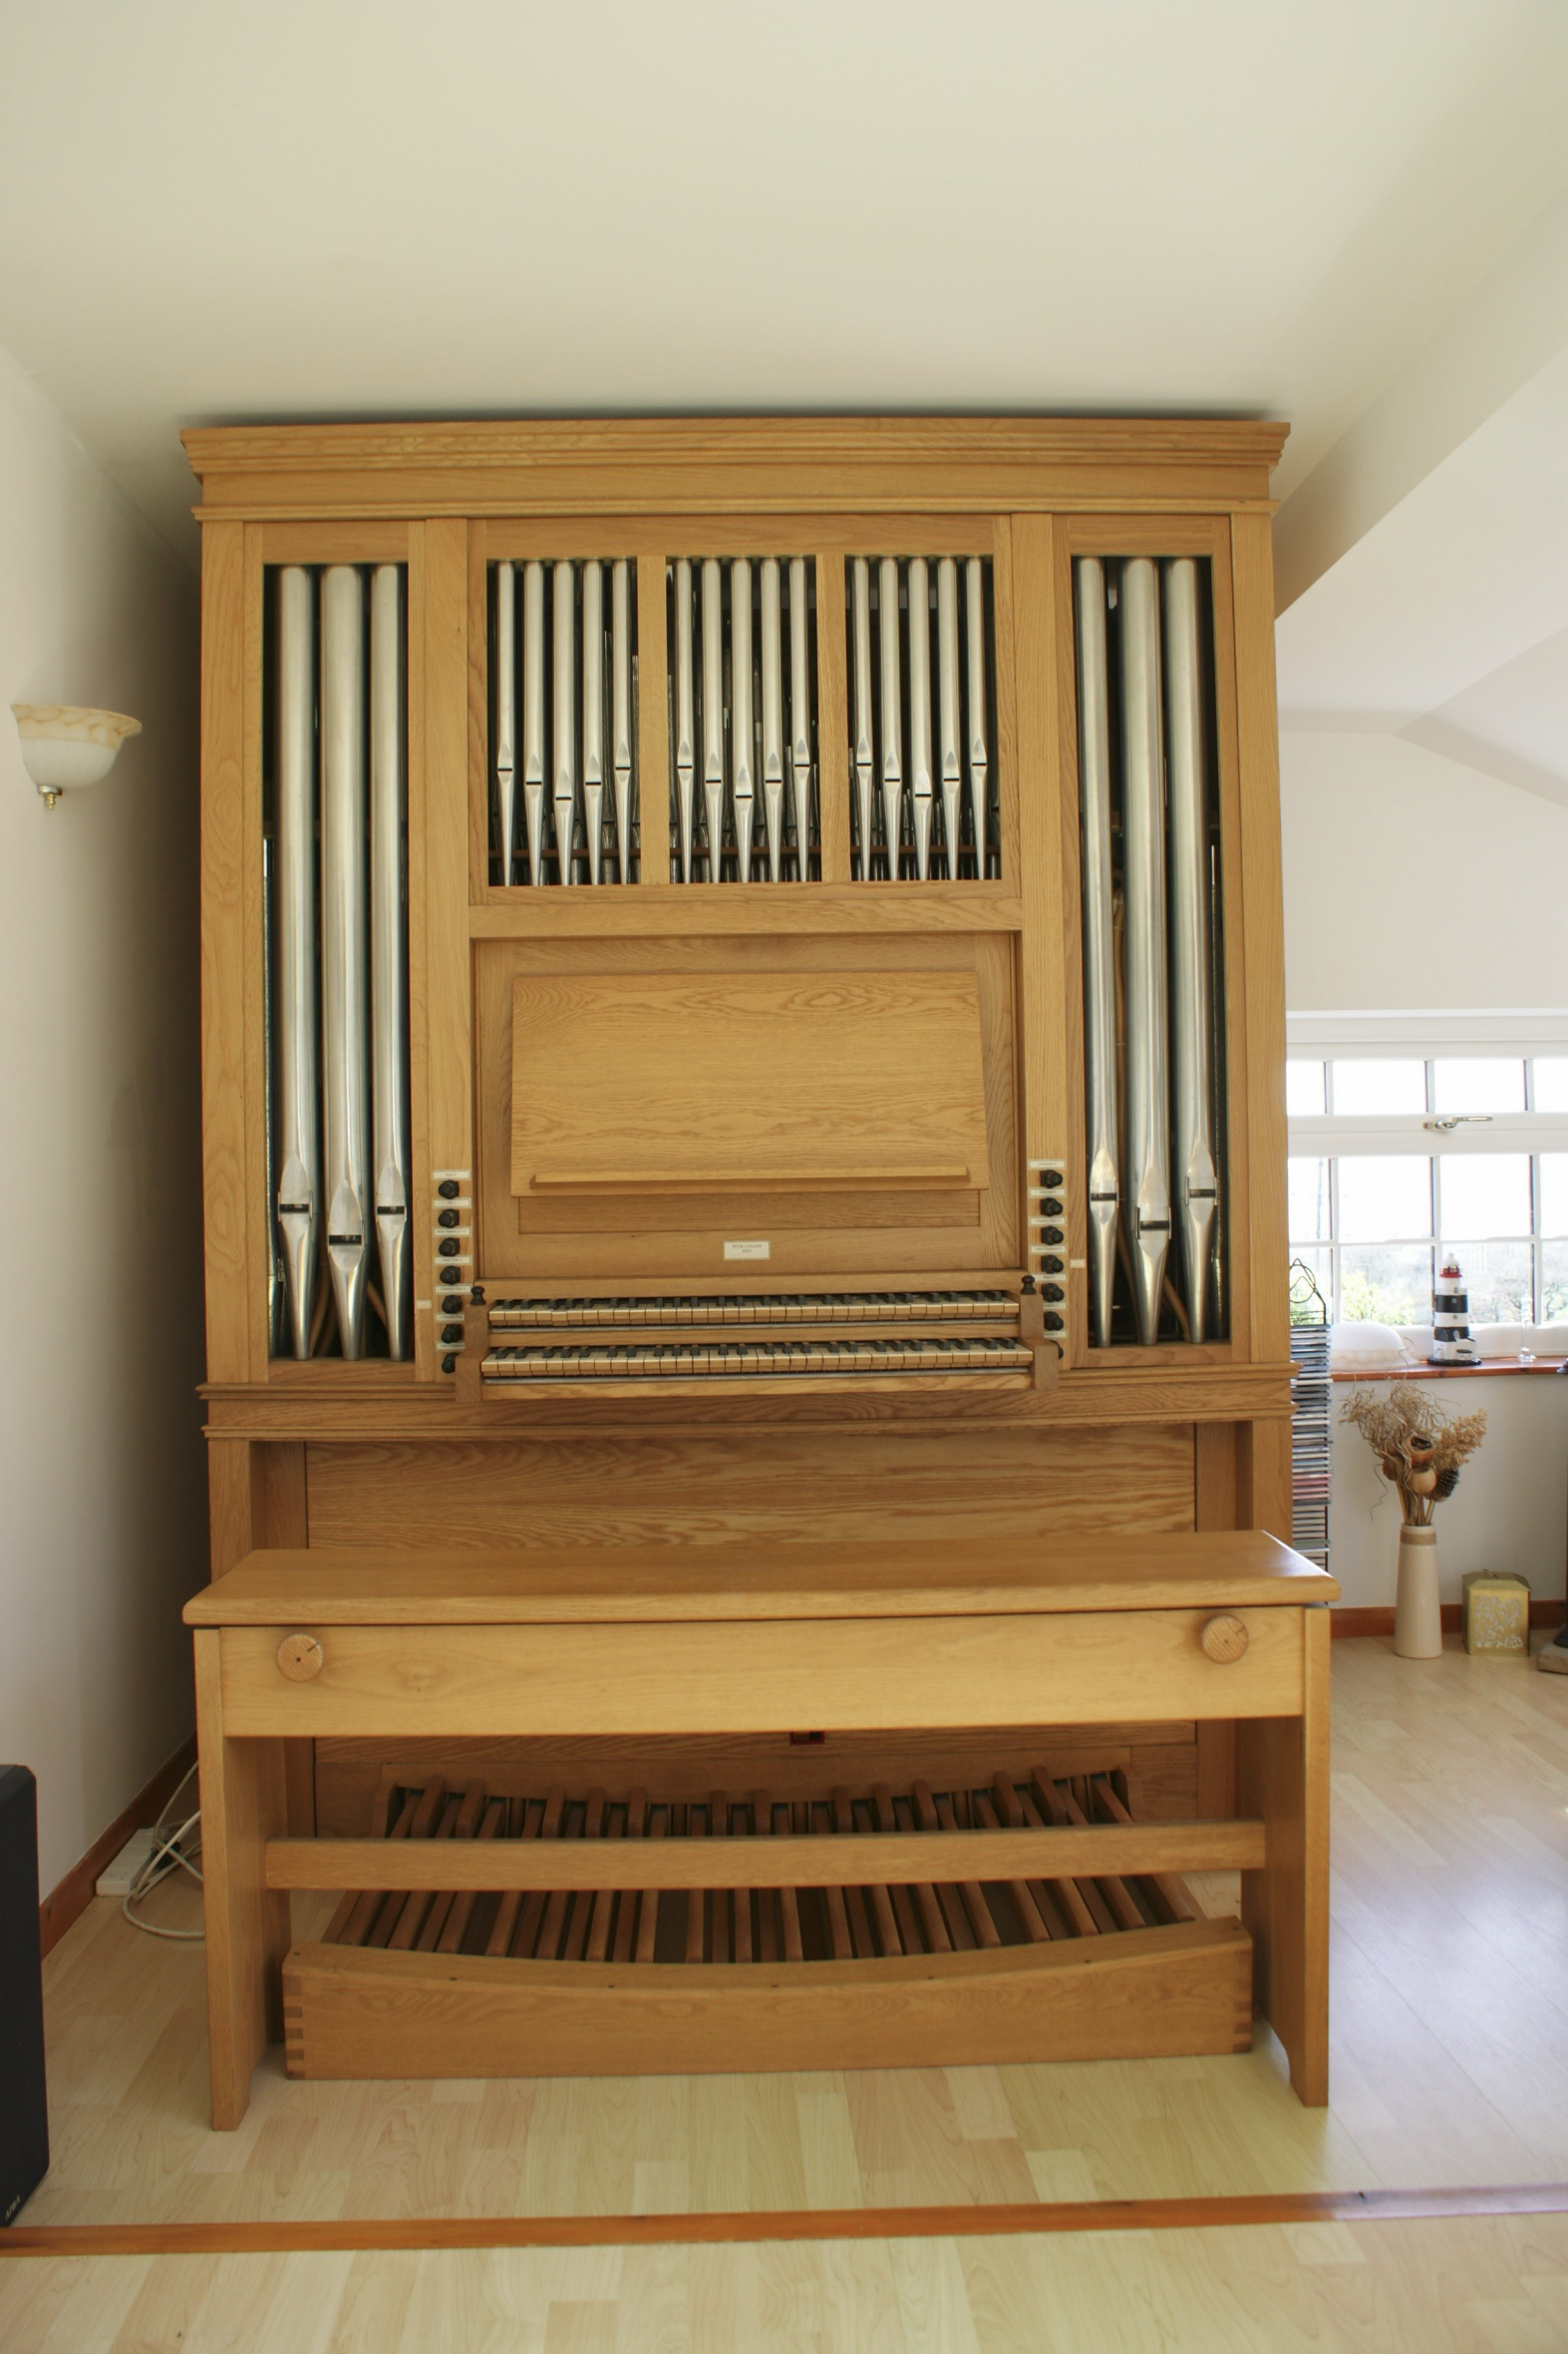 Peter Collins Organ